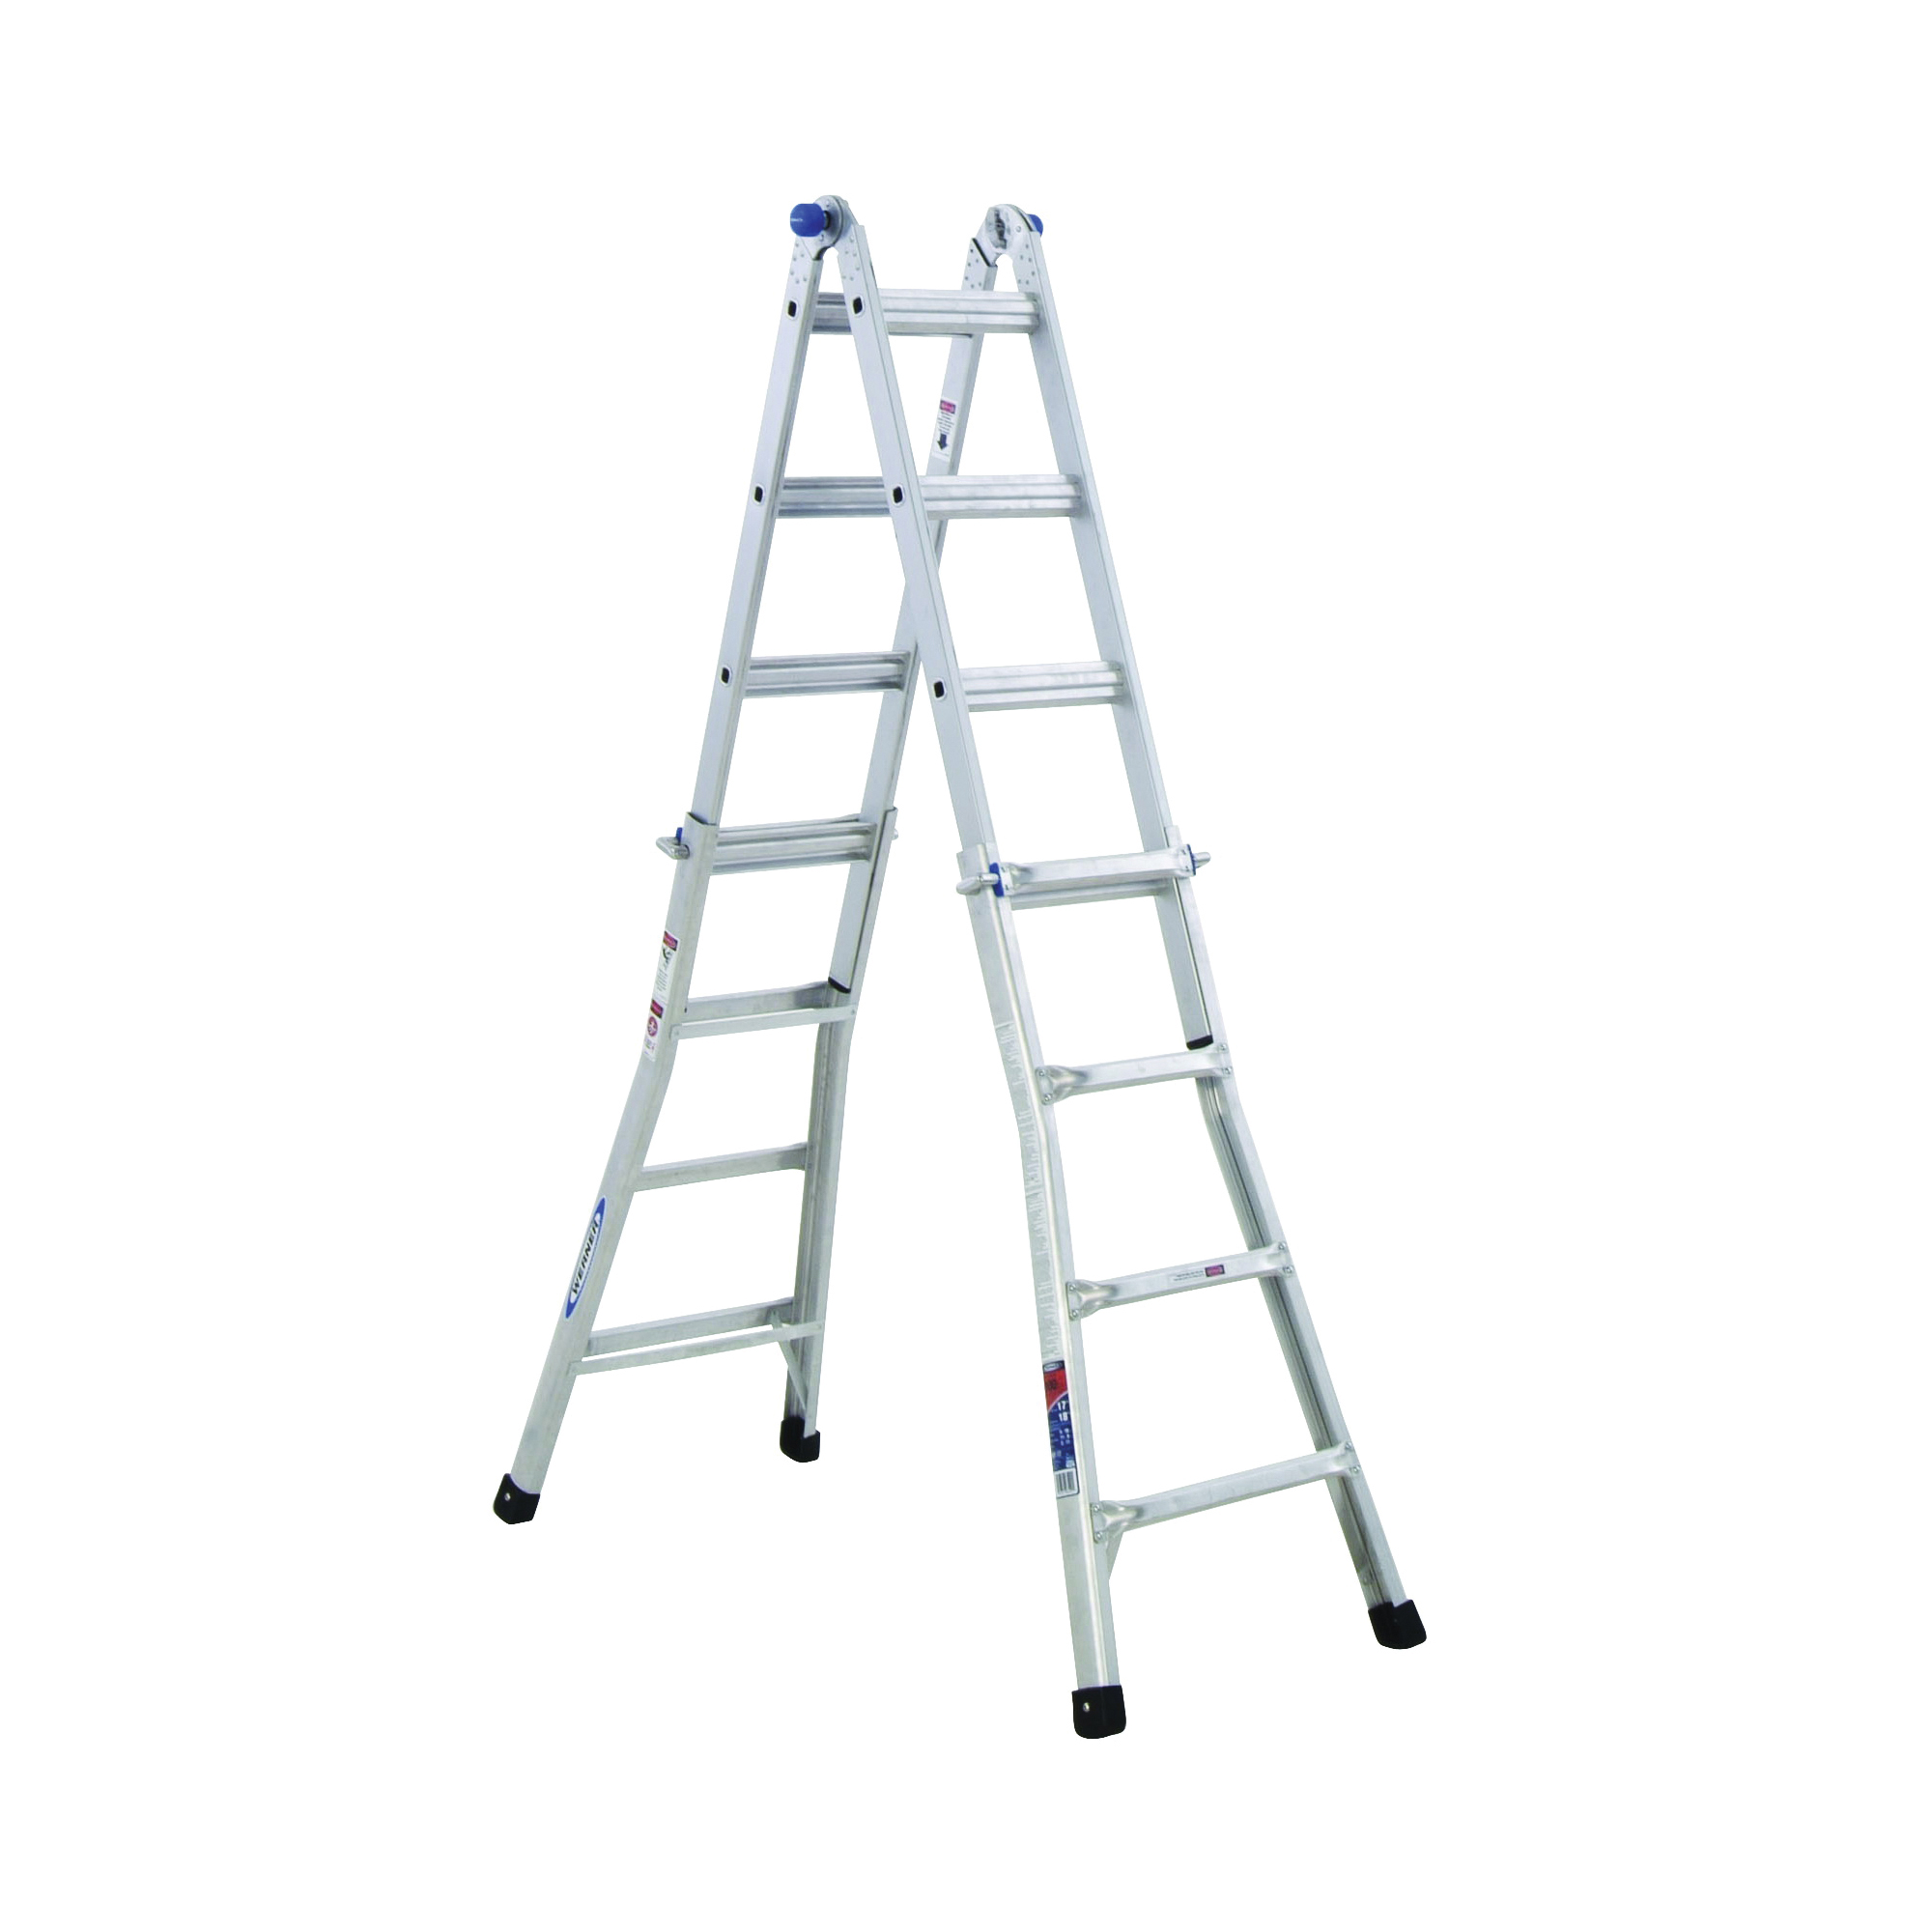 Picture of WERNER MT-17 Telescoping Multi-Ladder, 18 ft 1 in Max Reach H, 16-Step, 300 lb, Type IA Duty Rating, Aluminum